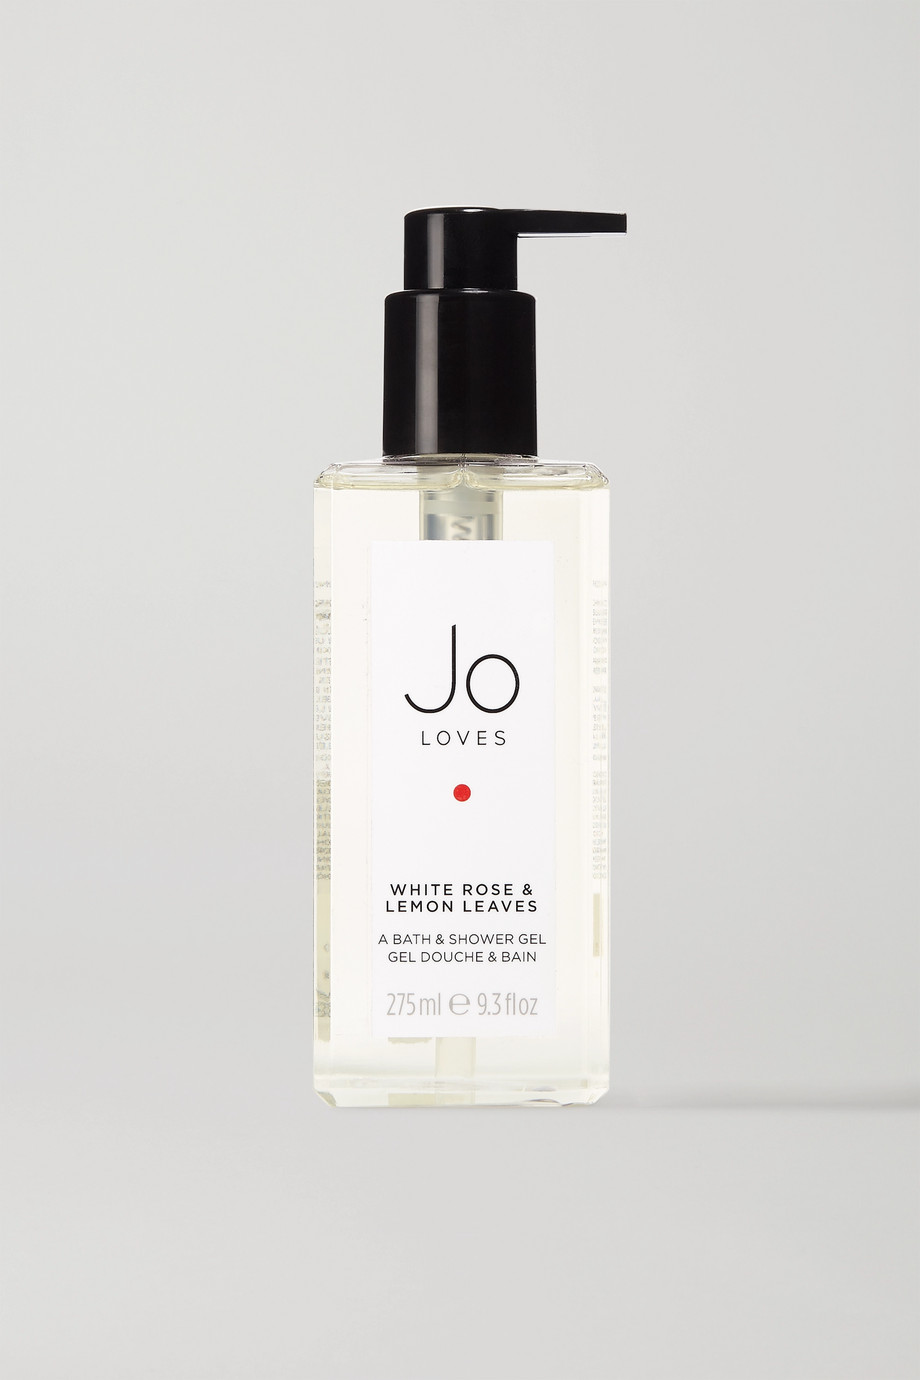 Jo Loves White Rose & Lemon Leaves Bath & Shower Gel, 275ml